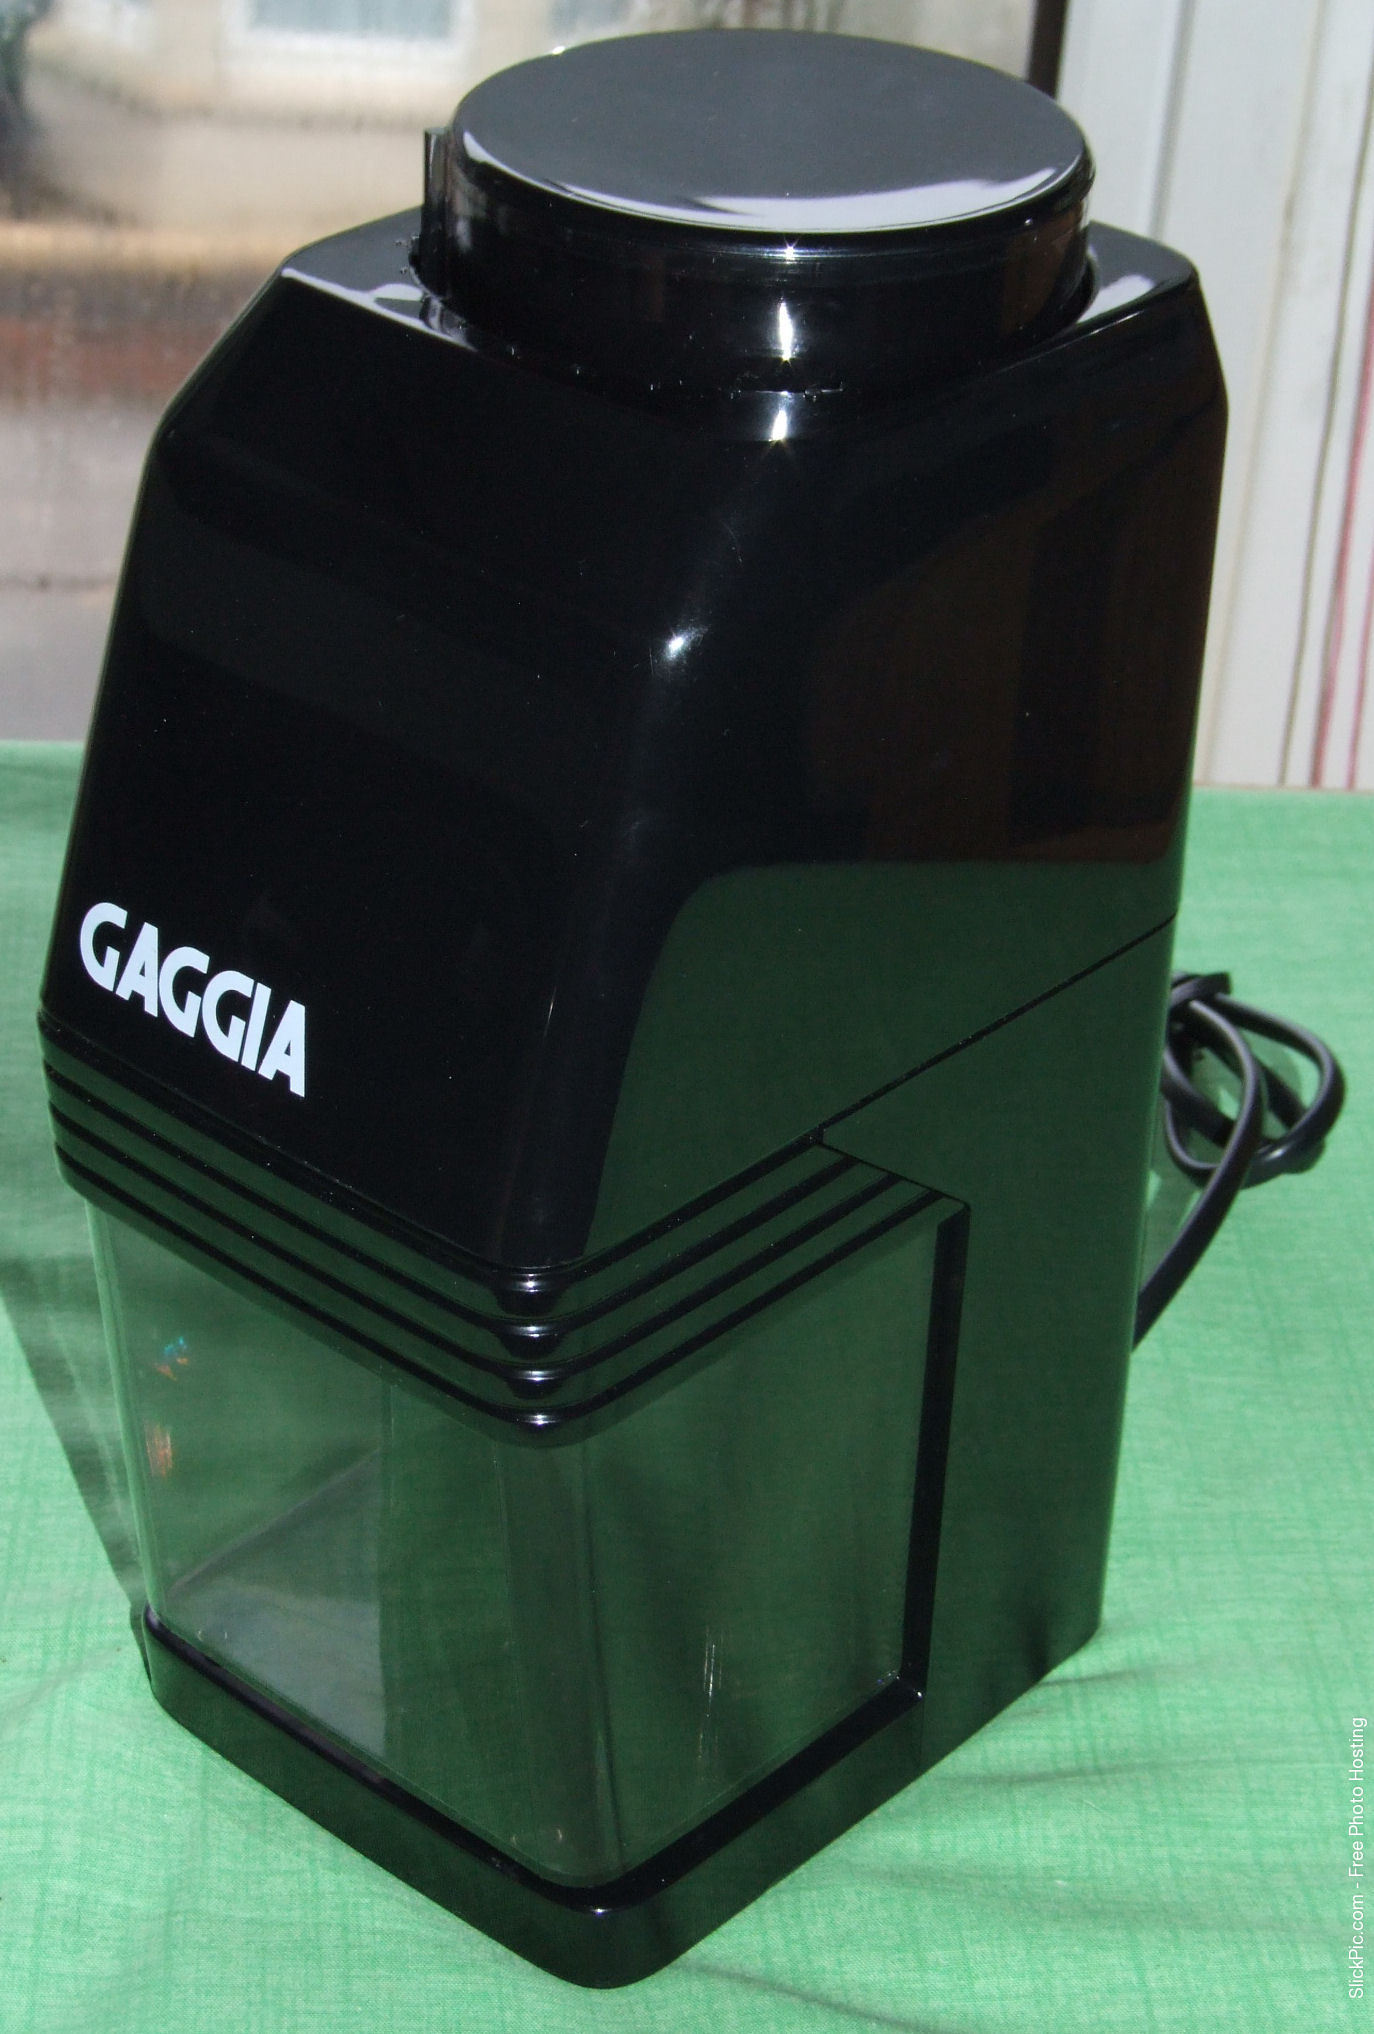 Gaggia MM Burr Coffee Grinder / Mill / Processor / Filter / Ground / Maker eBay